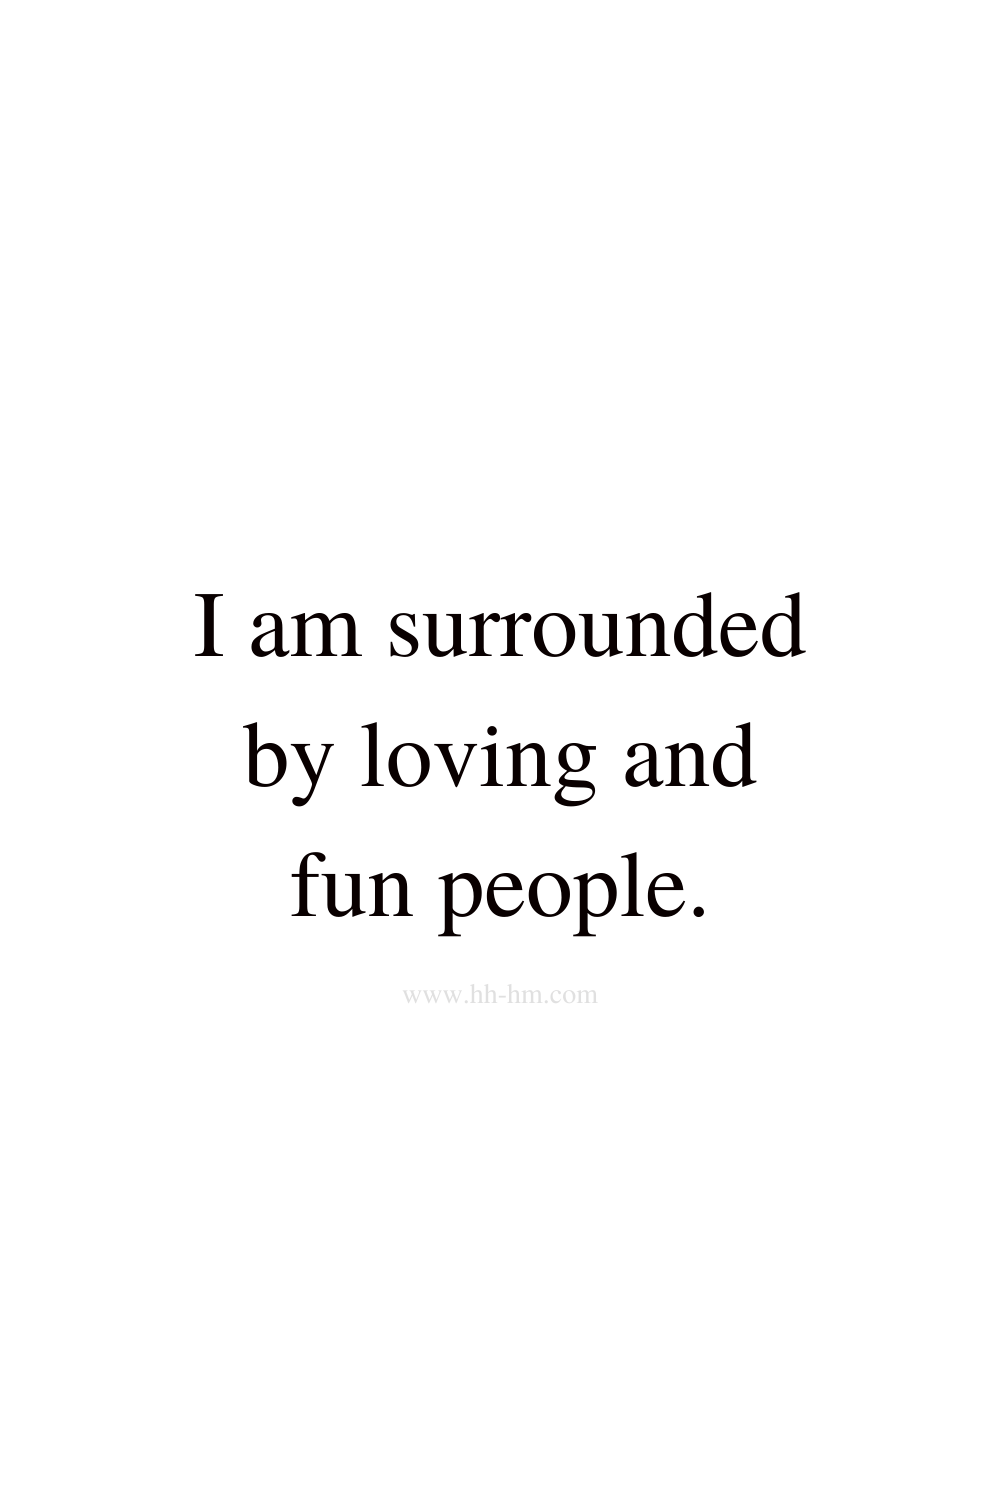 I am surrounded by loving and fun people - positive affirmations